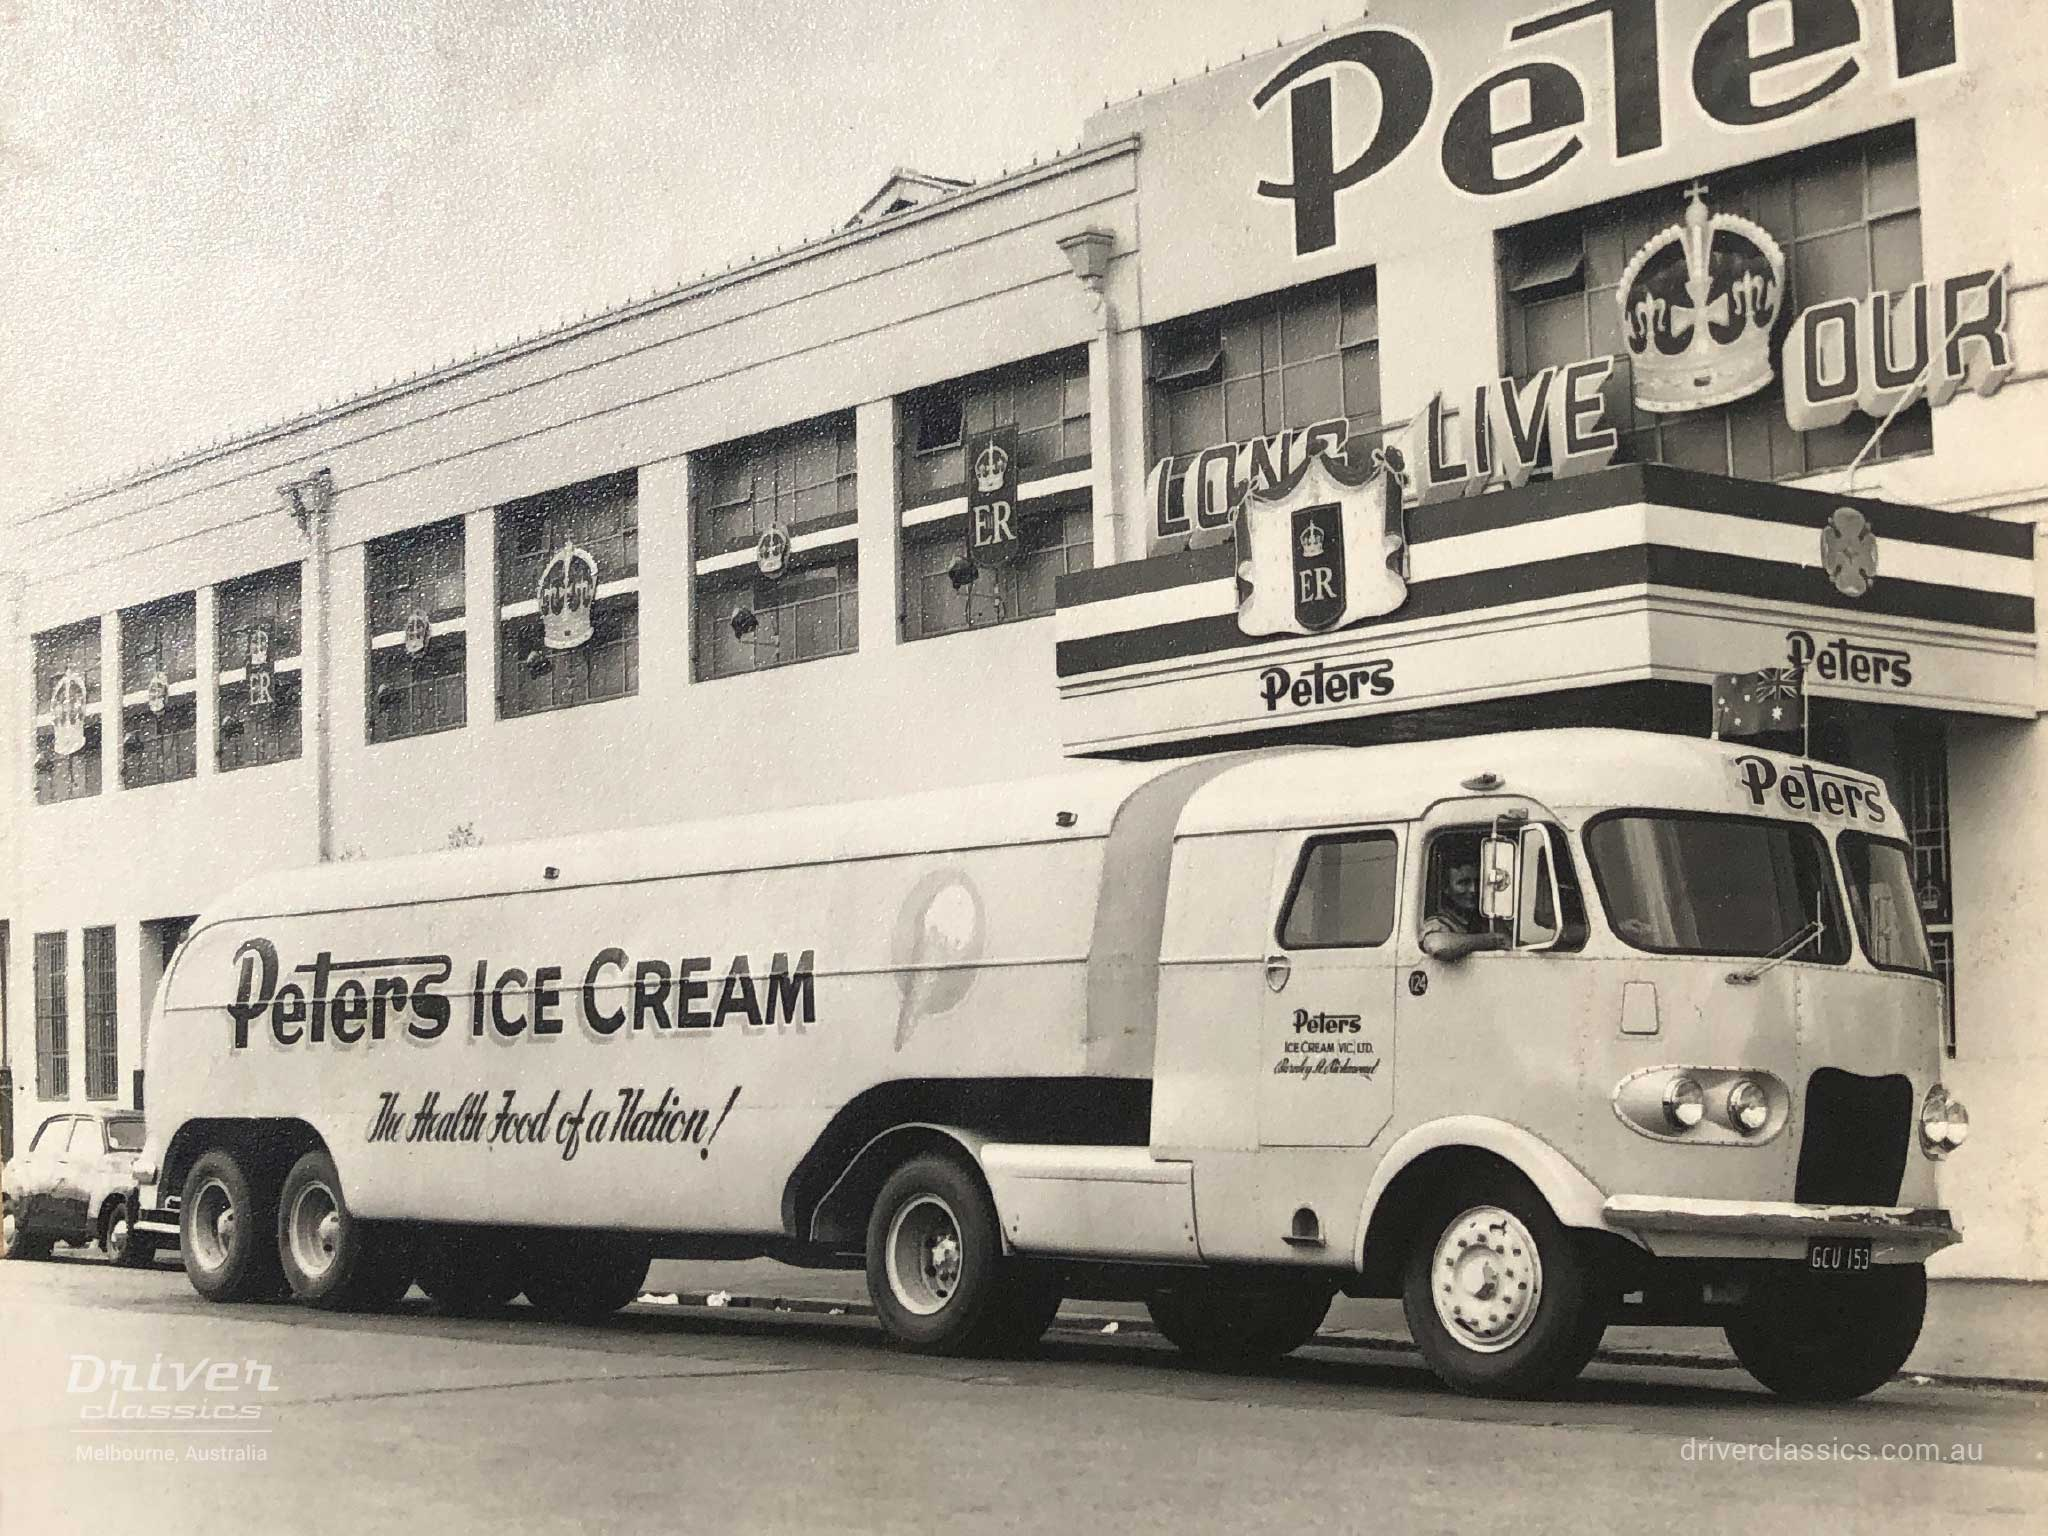 1950s Ansair truck for Peter's Ice Cream with Flxible Clipper styling features